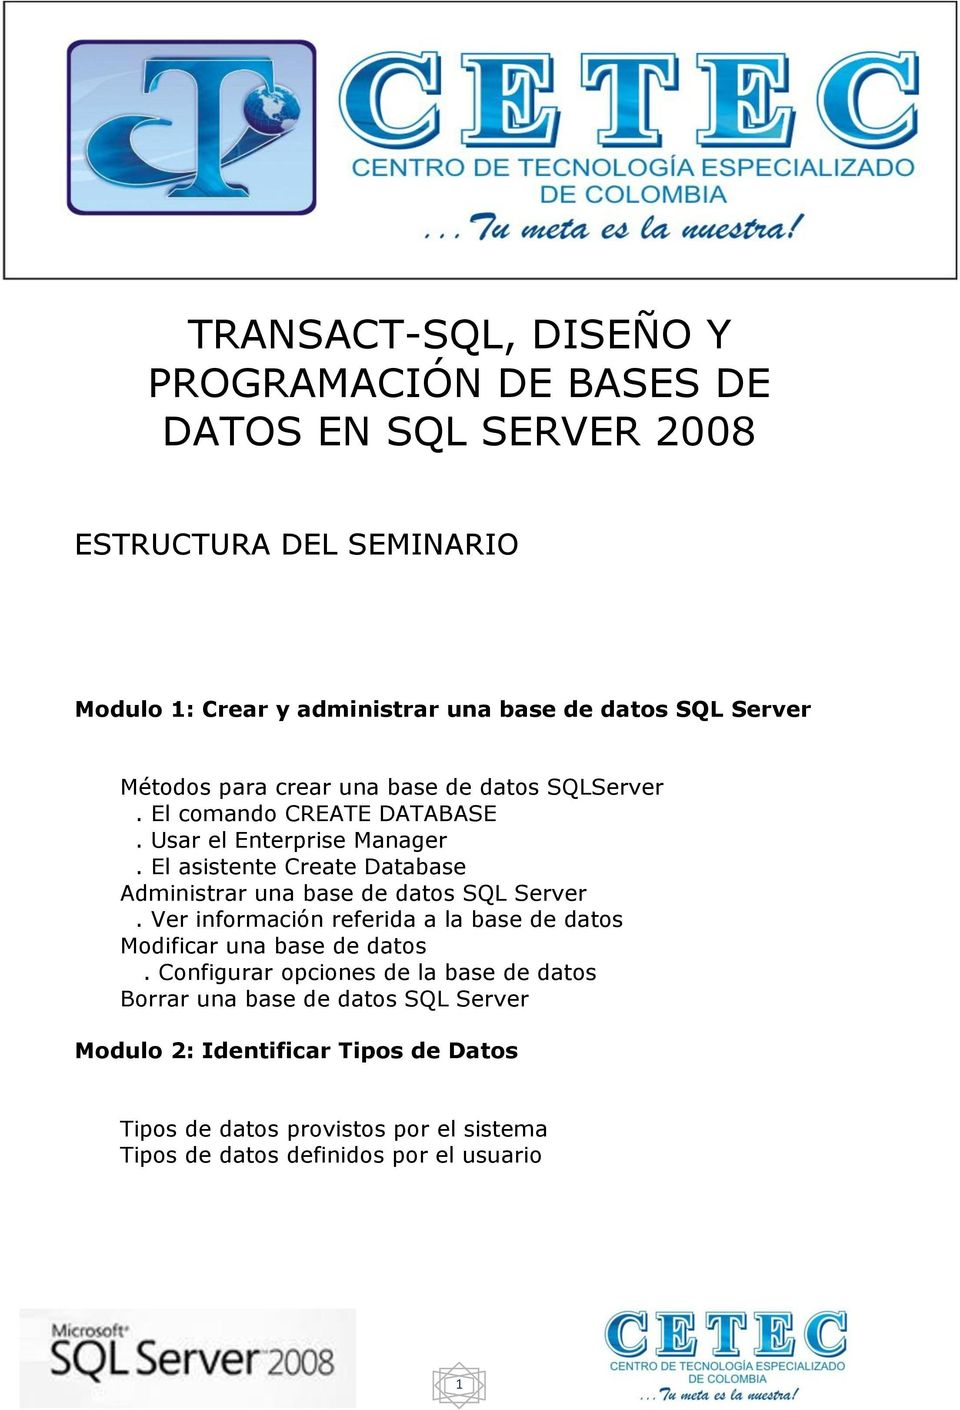 El asistente Create Database Administrar una base de datos SQL Server. Ver información referida a la base de datos Modificar una base de datos.